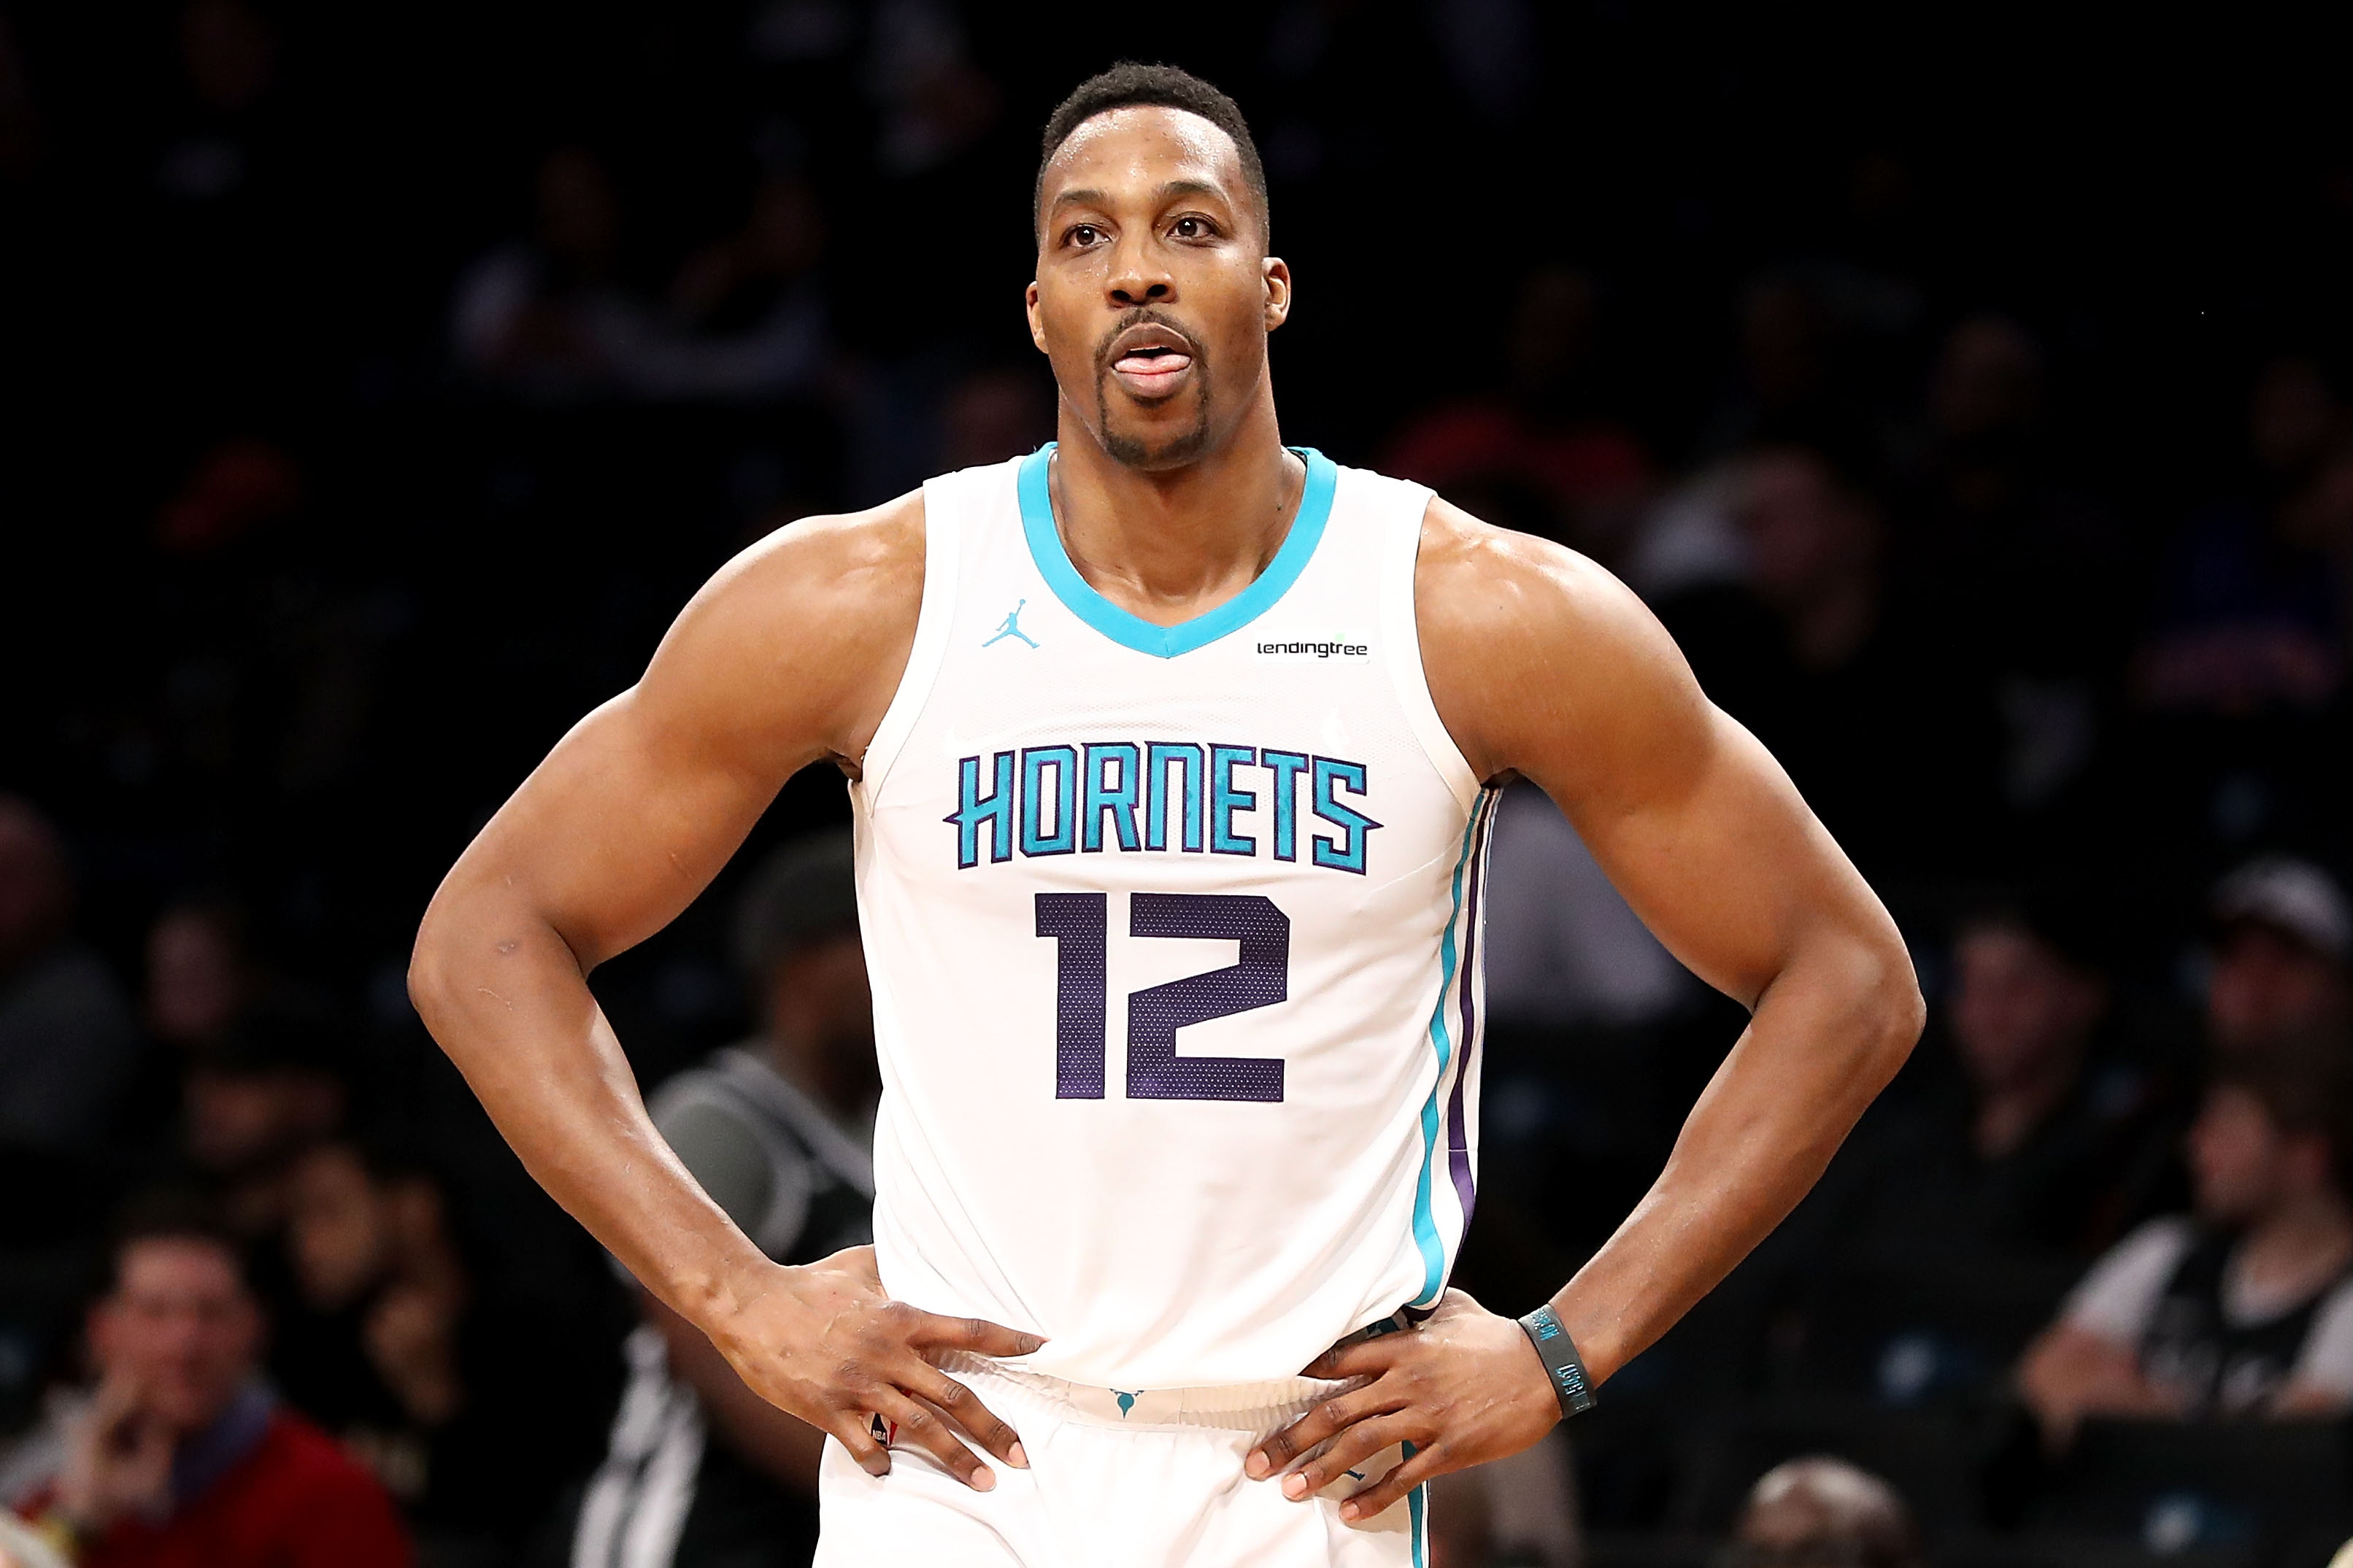 Dwight Howard has been traded again, and his value has never been lower